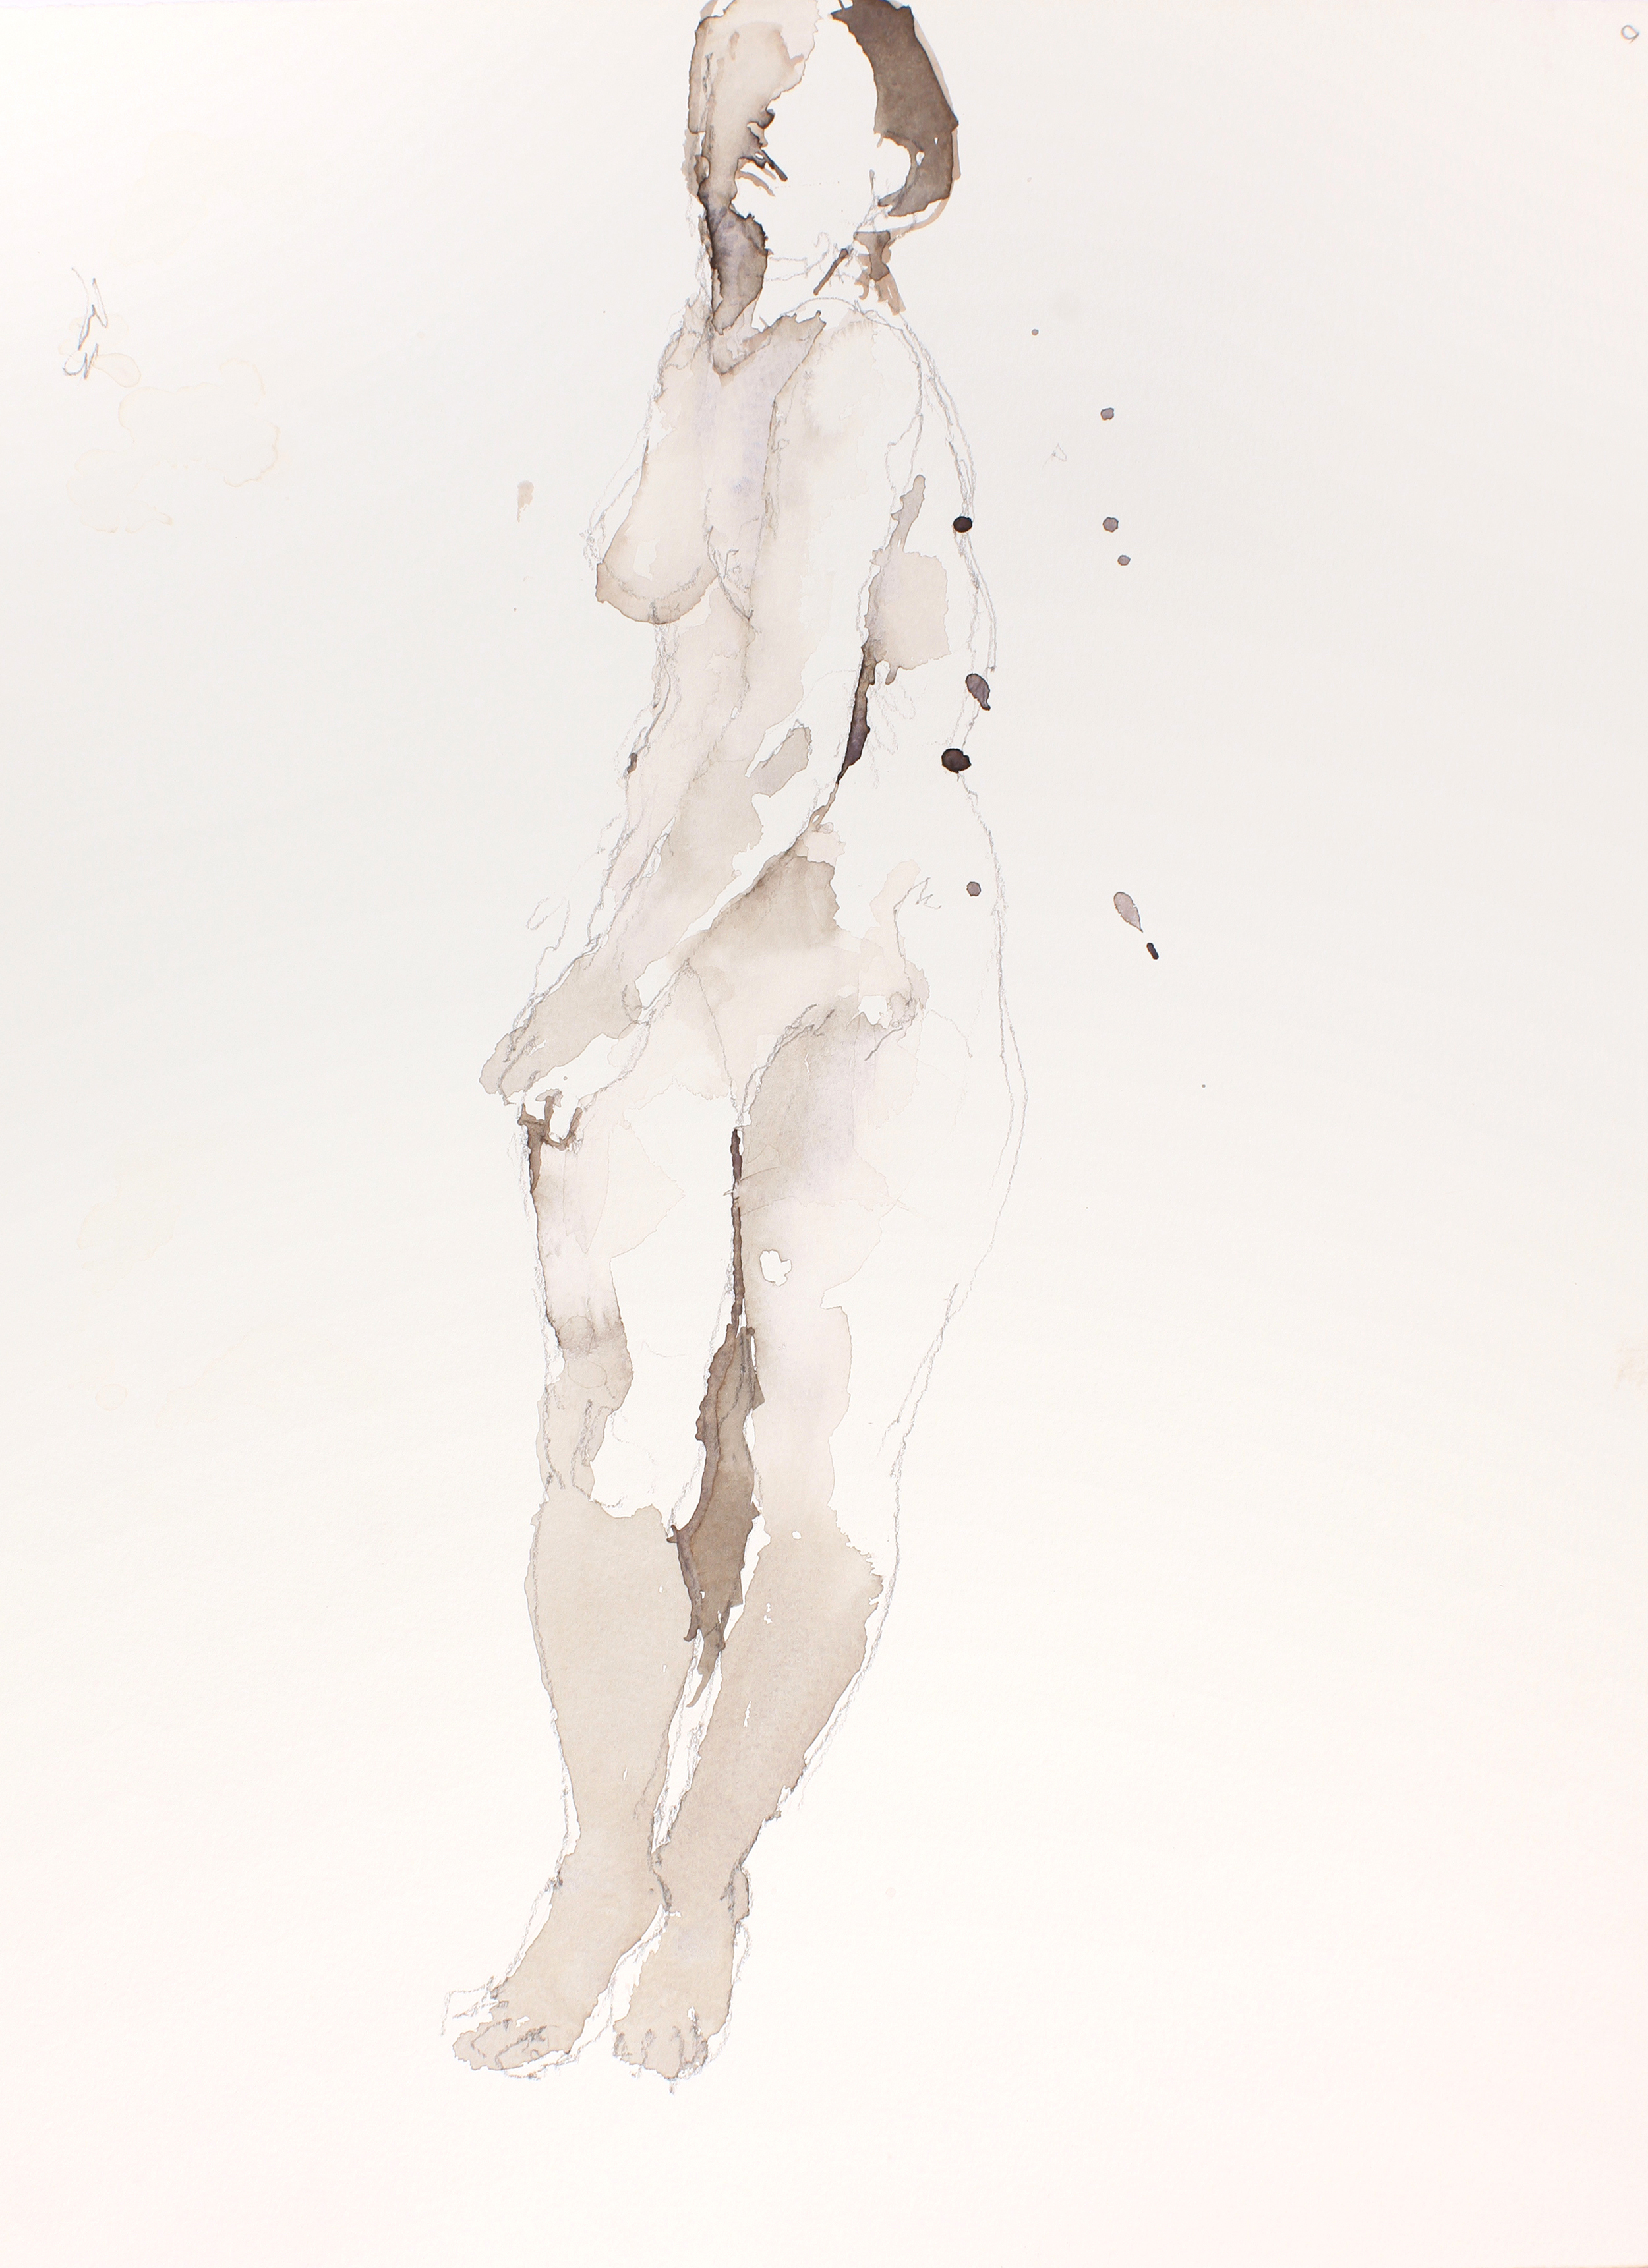 2004_Standing_Nude_in_Contraposto_Watercolour_and_pencil_on_paper_15x11inches_WPF102.jpg